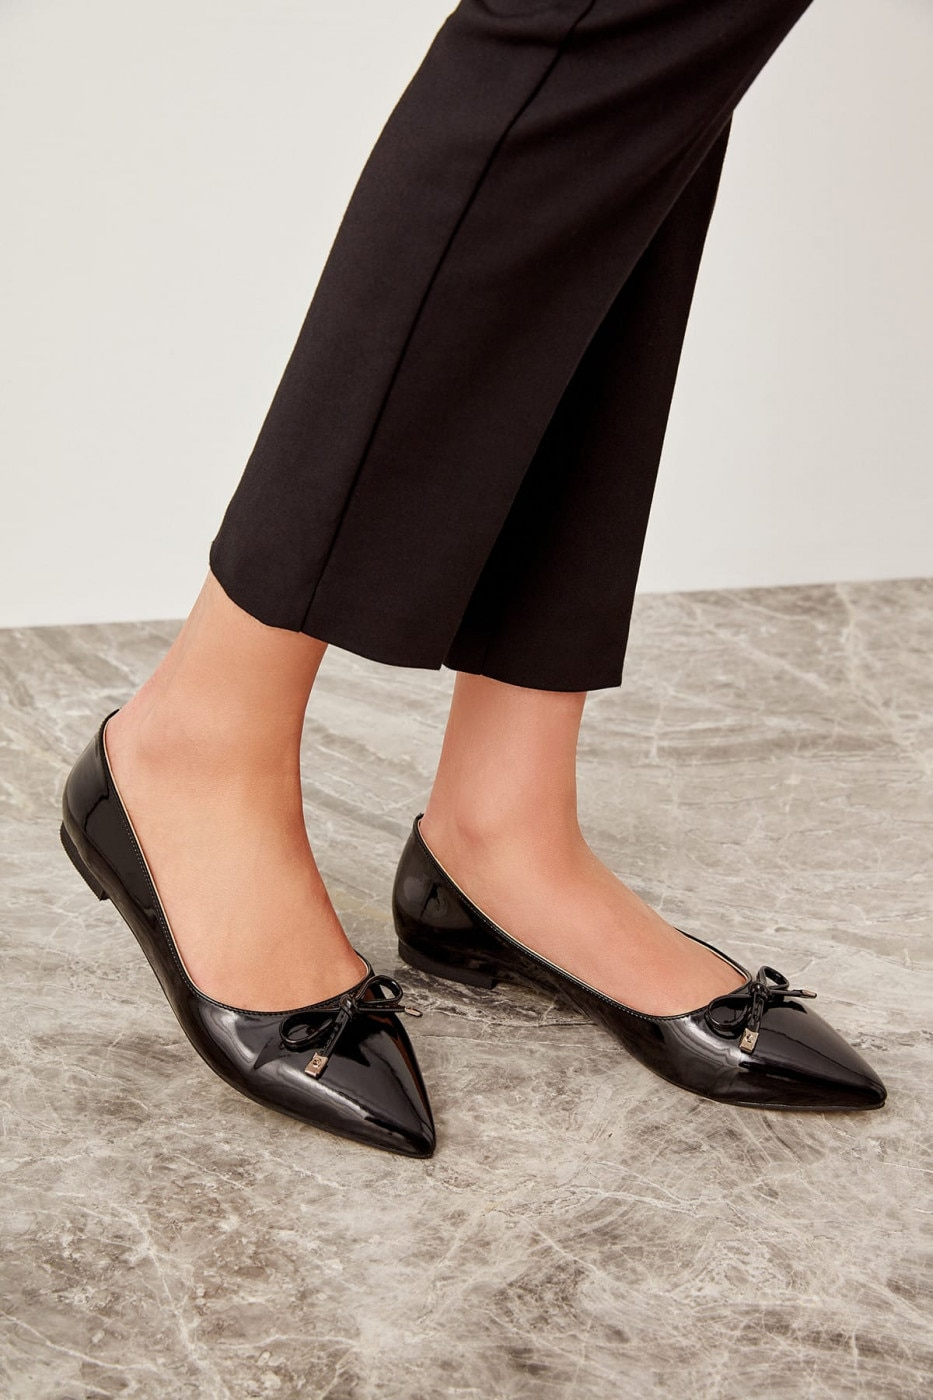 Trendyol Black Patent Leather Women's Flats